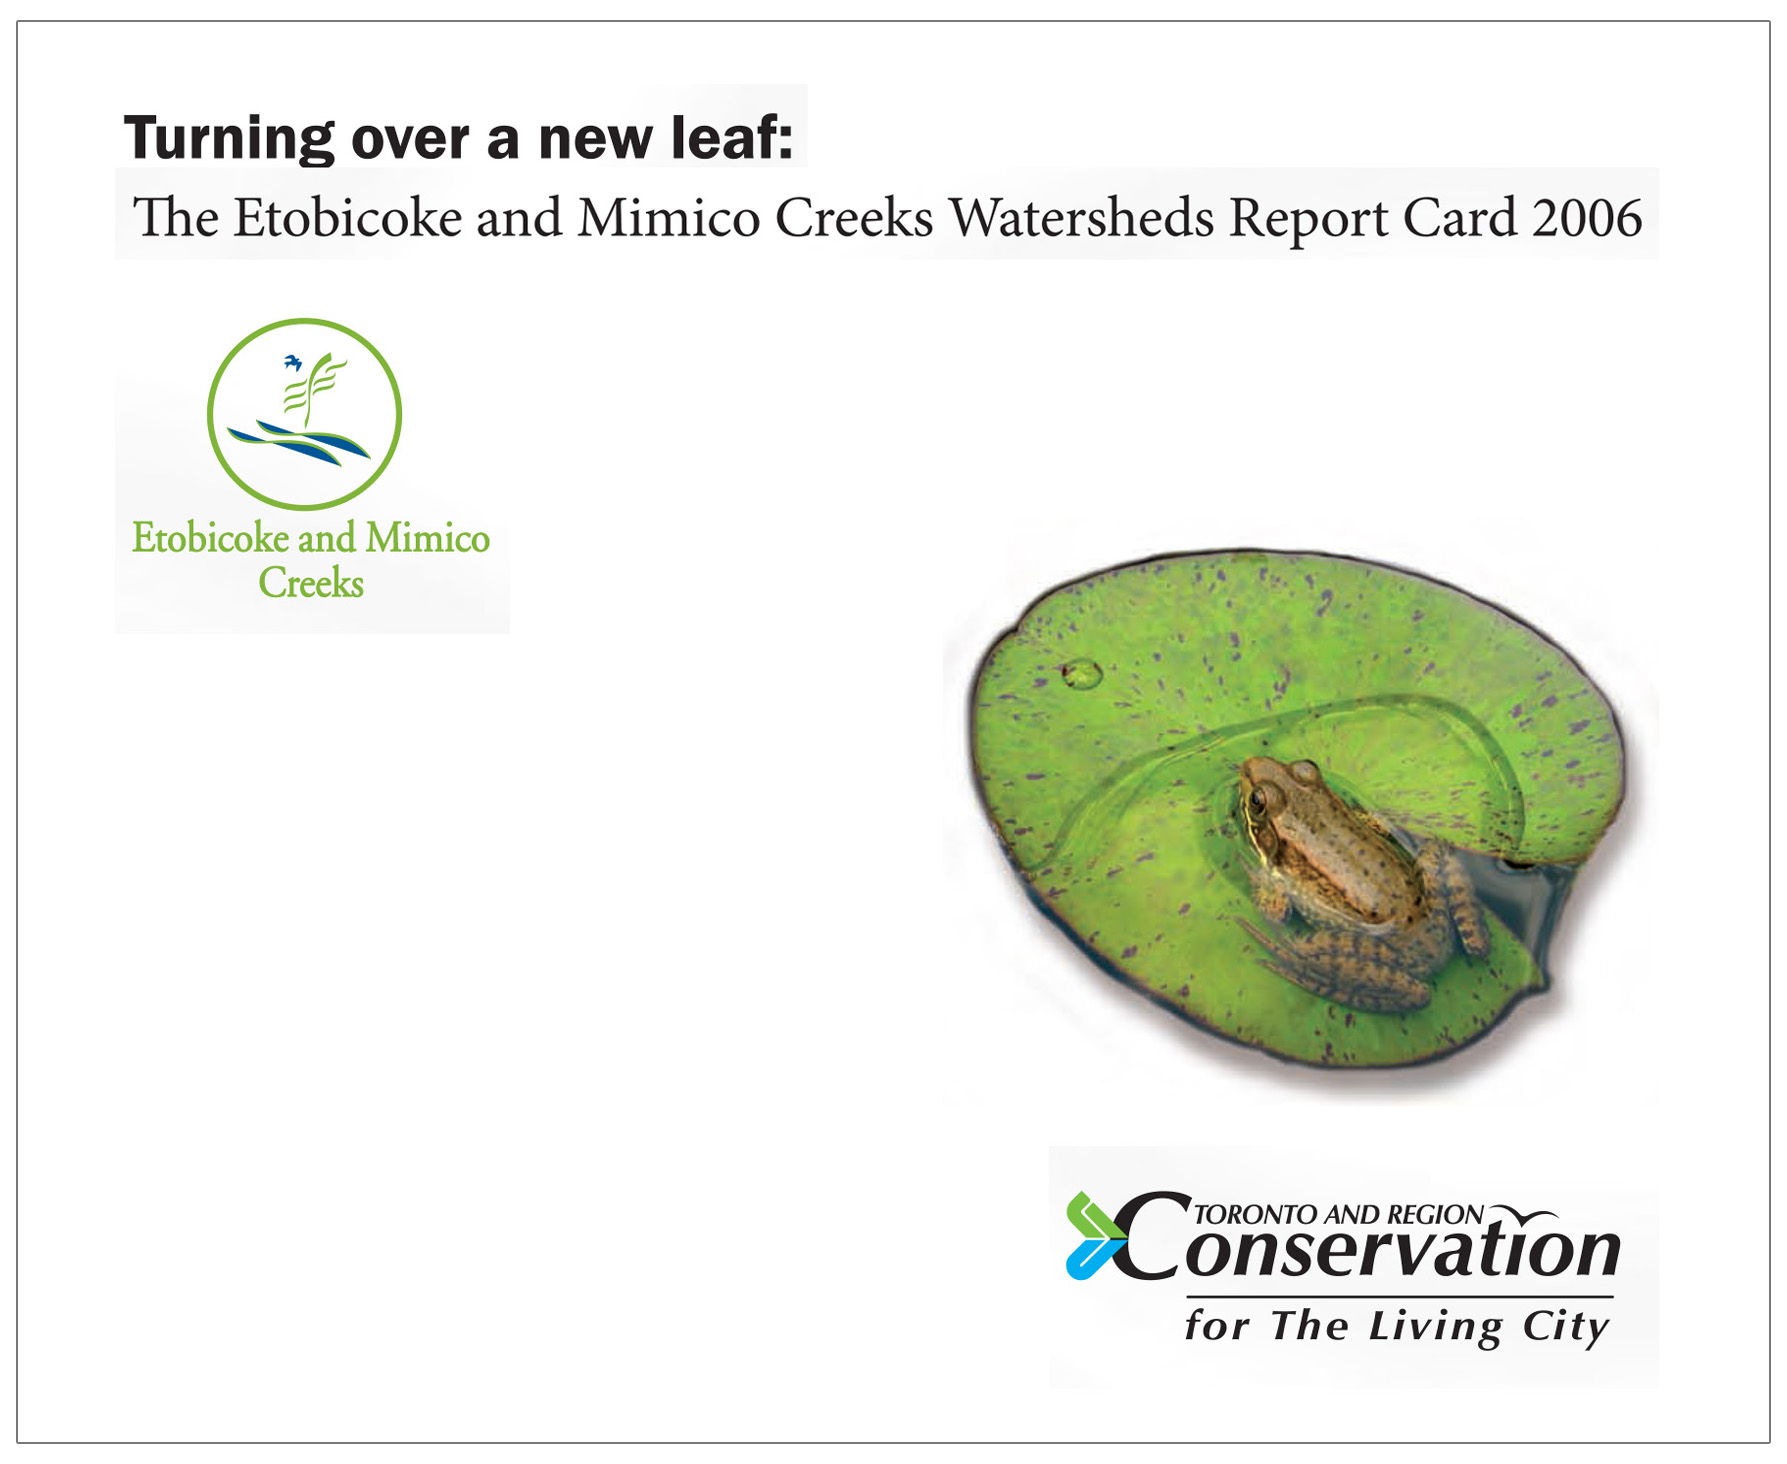 cover of 2006 Etobicoke Mimico watersheds report card